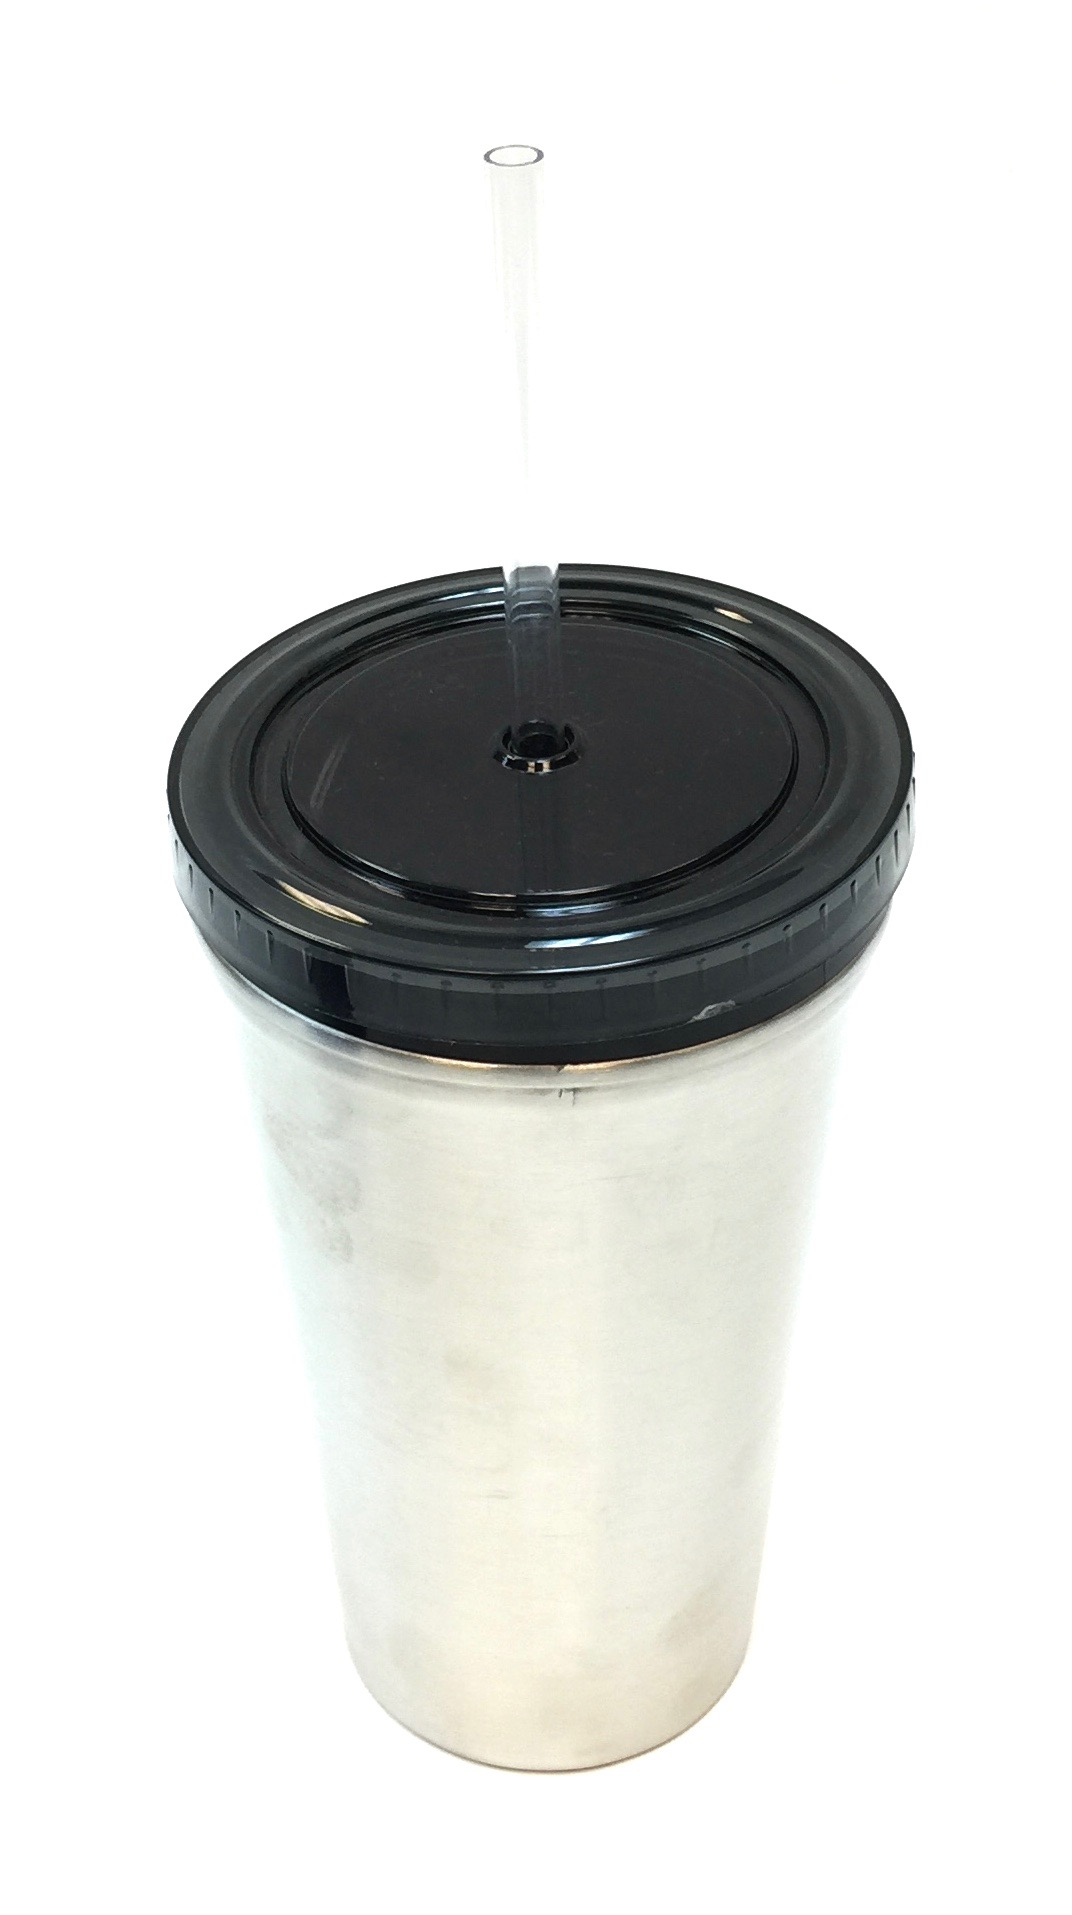 16 Oz Stainless Steel Mug - Silver